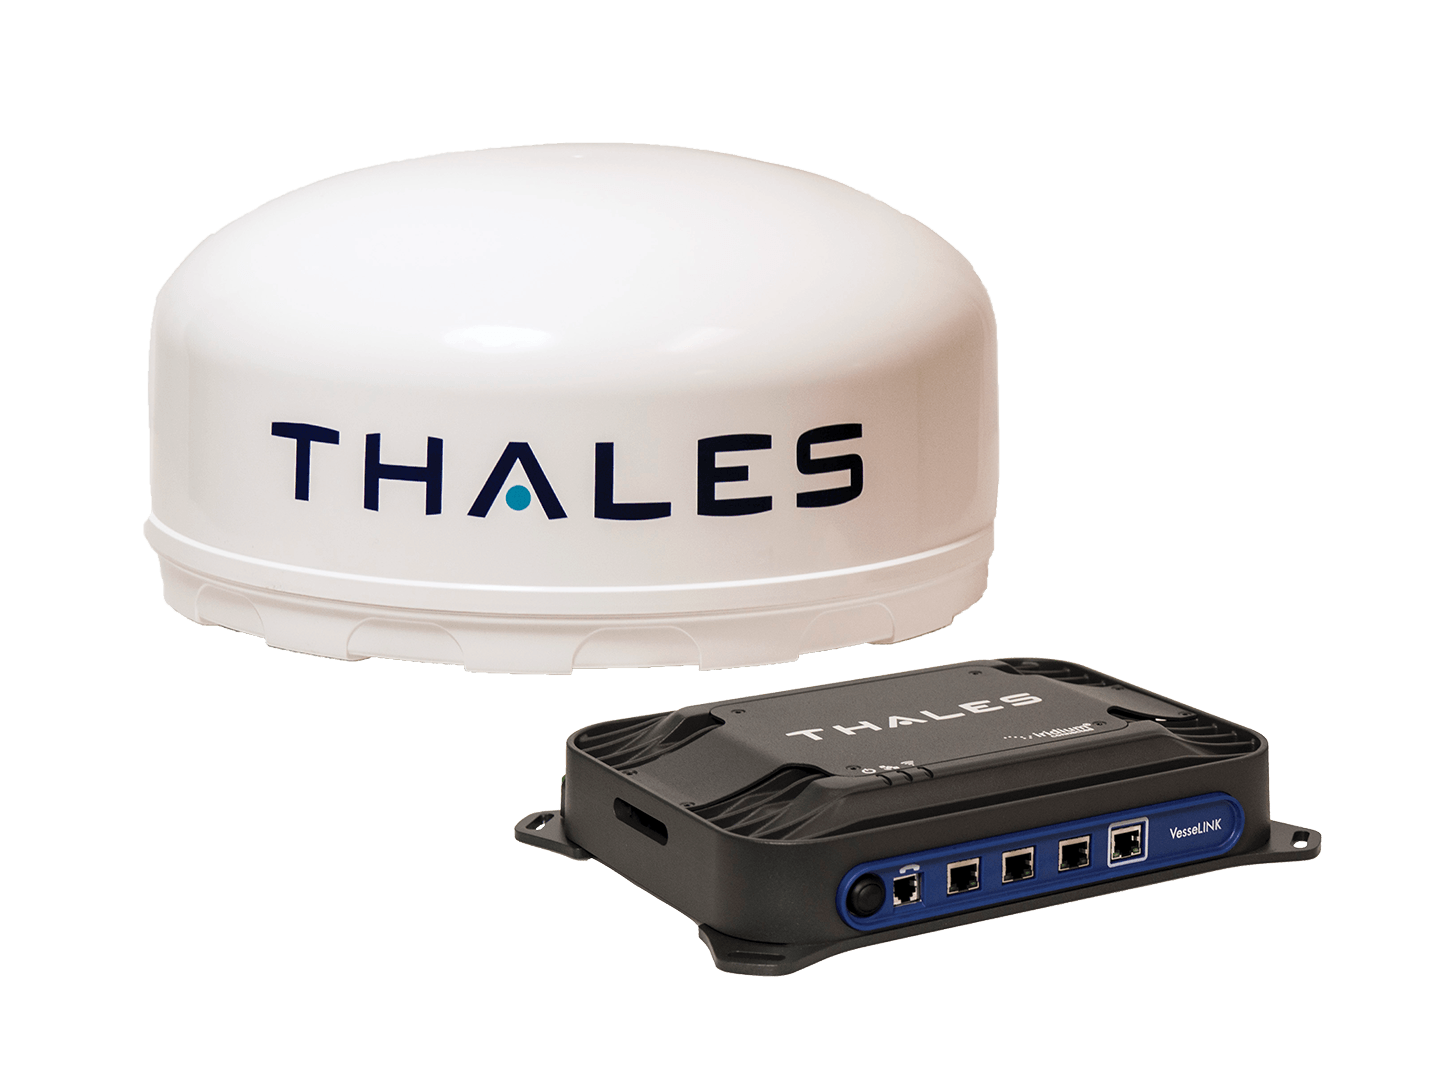 Antenna and terminal box of Thales VesseLINK product.